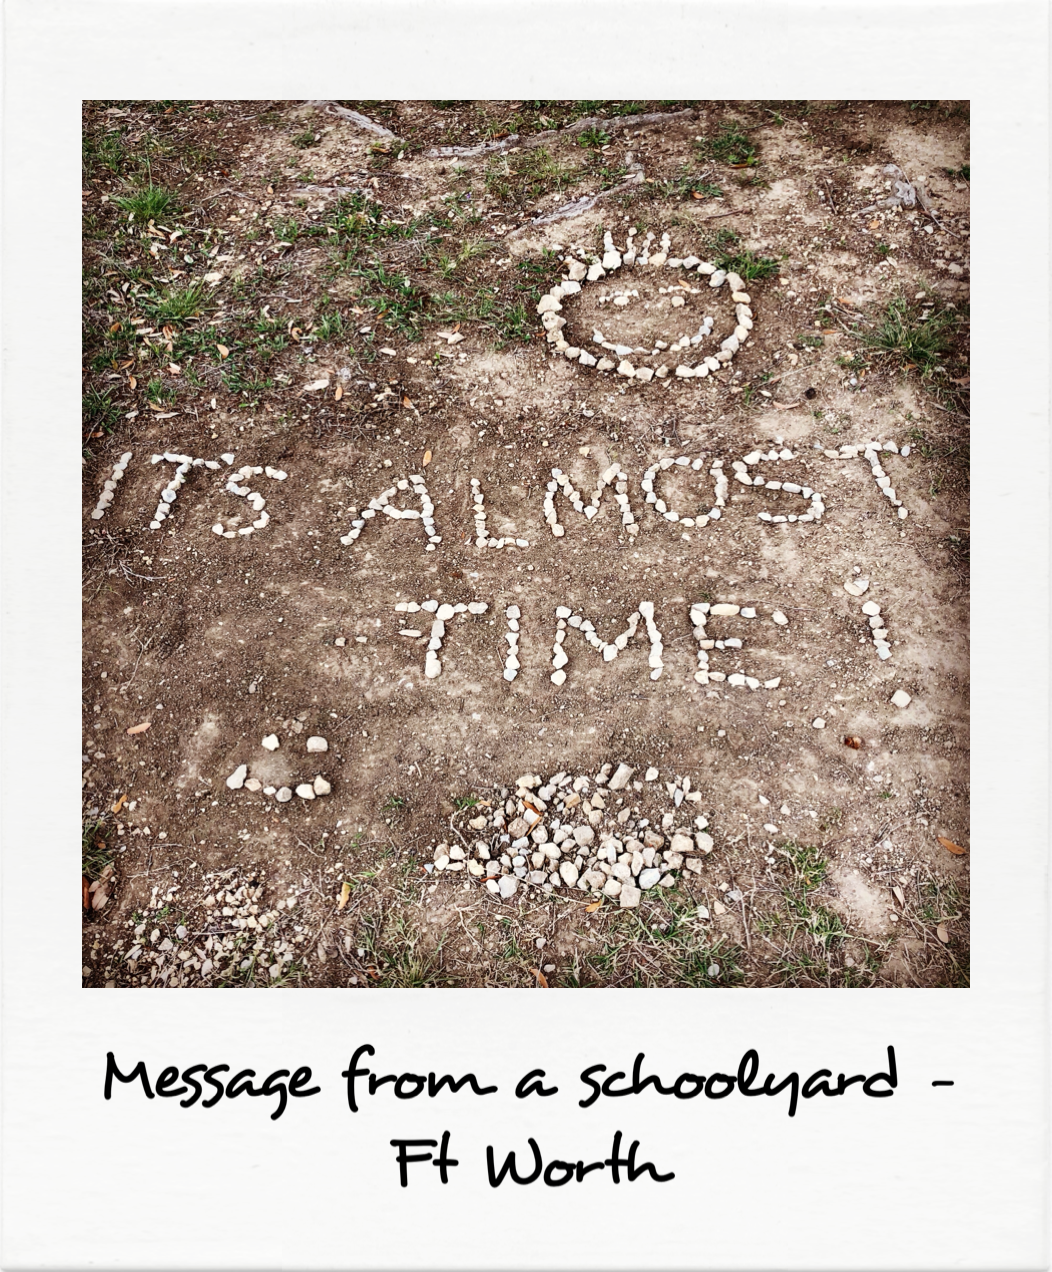 Message from a schoolyard - Ft Worth